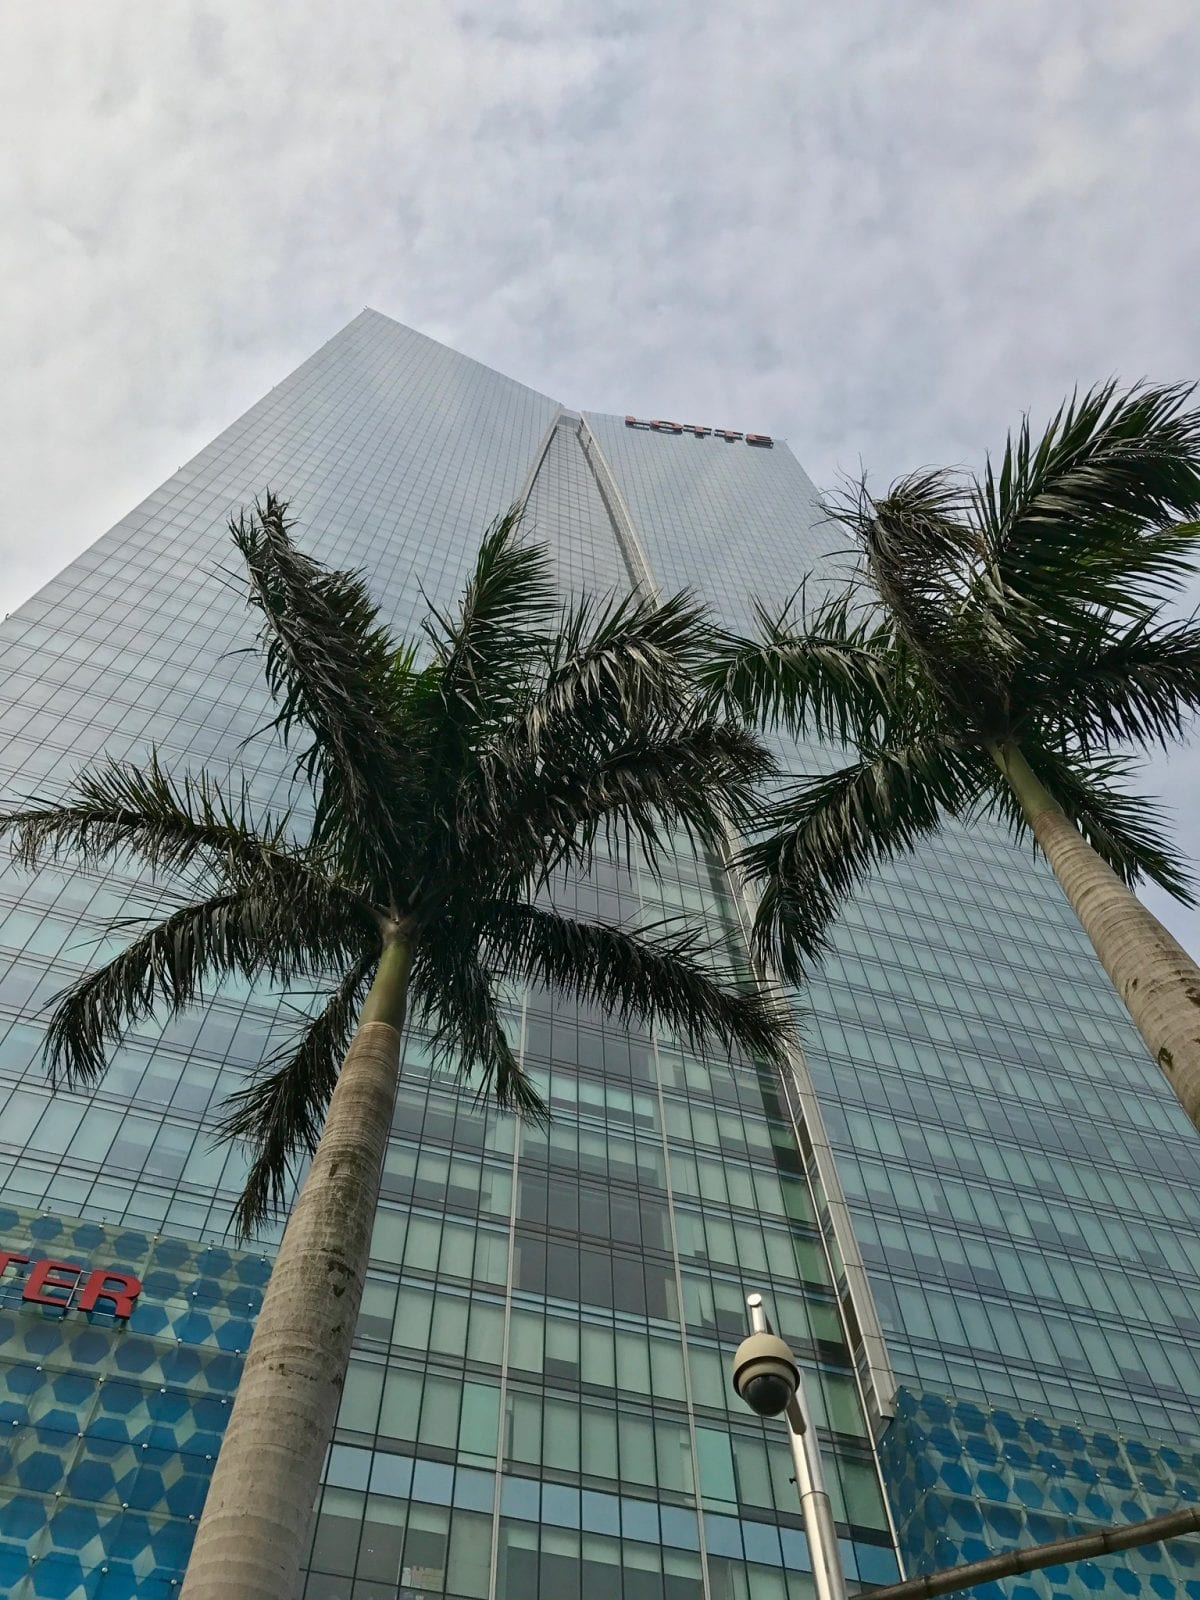 Image looking upwards at the Lotte Center Hanoi in Vietnam